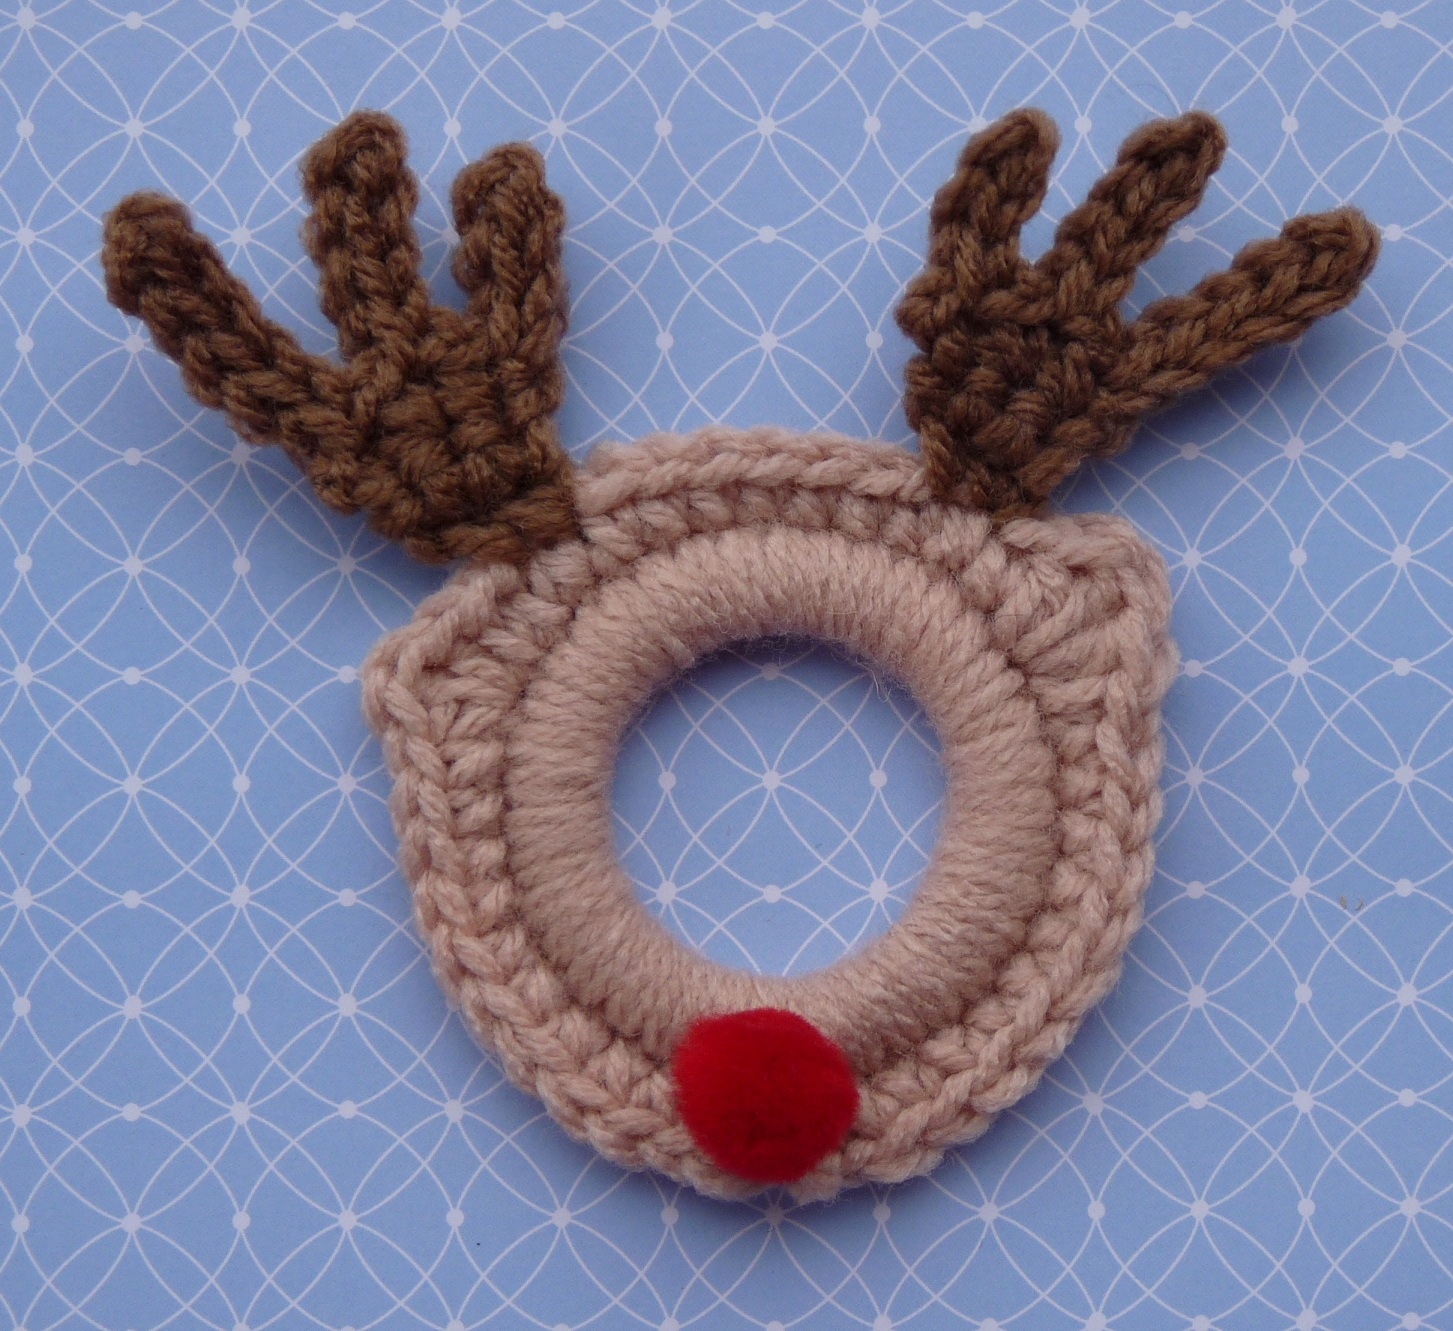 Crochet Rudolph the Red Nose Ring Ornament FREE Pattern